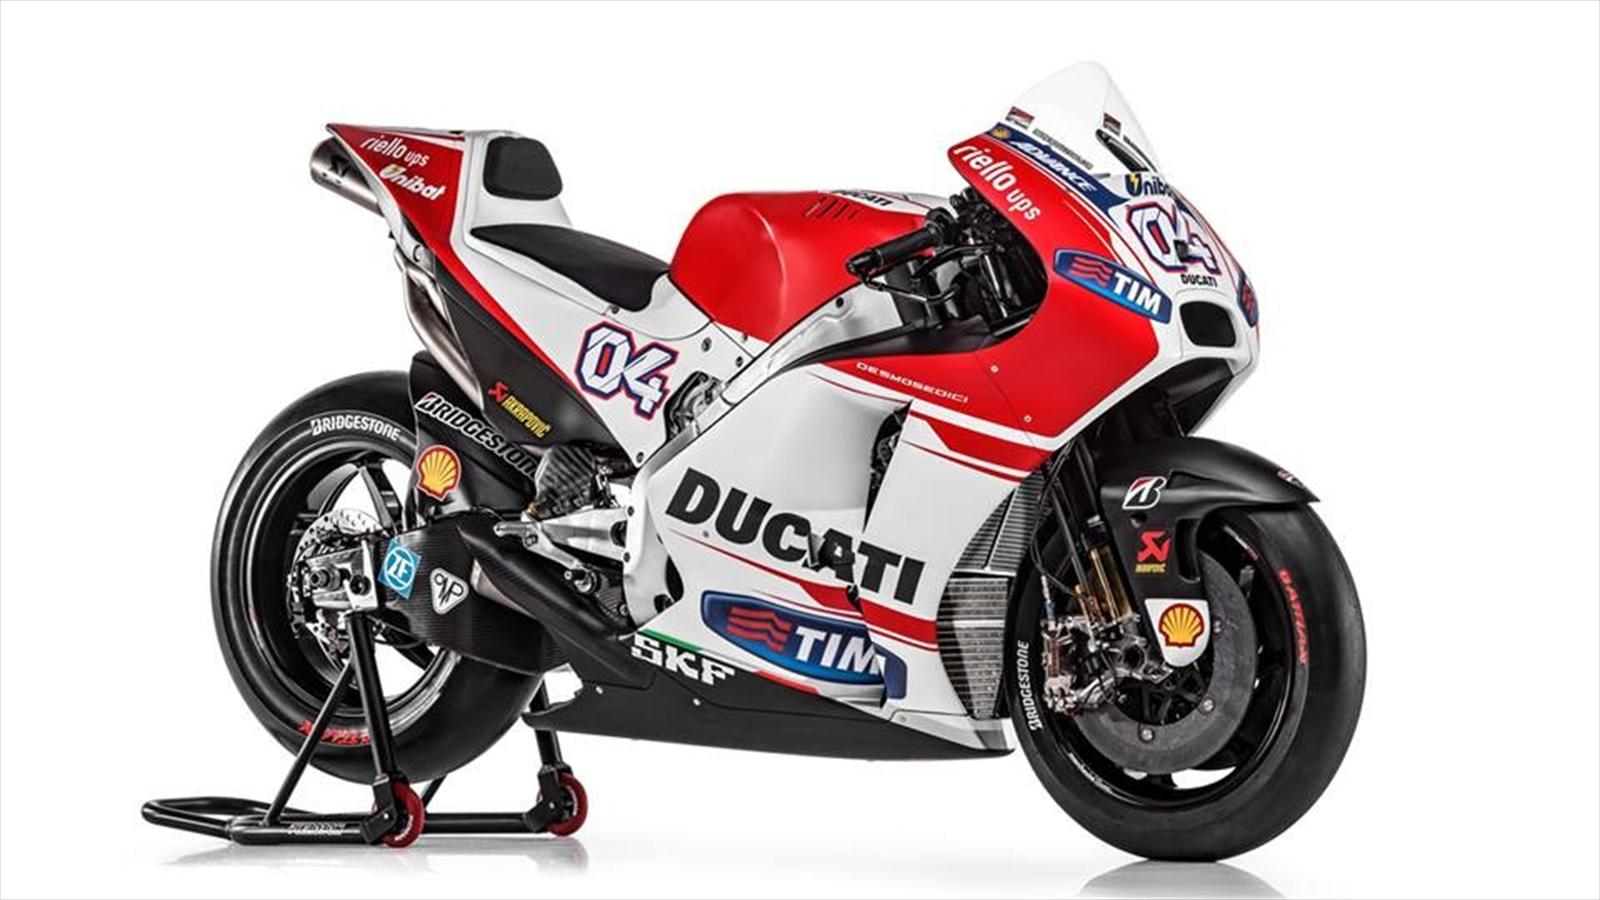 ducati launches 2015 motogp bike motorcycling eurosport. Black Bedroom Furniture Sets. Home Design Ideas